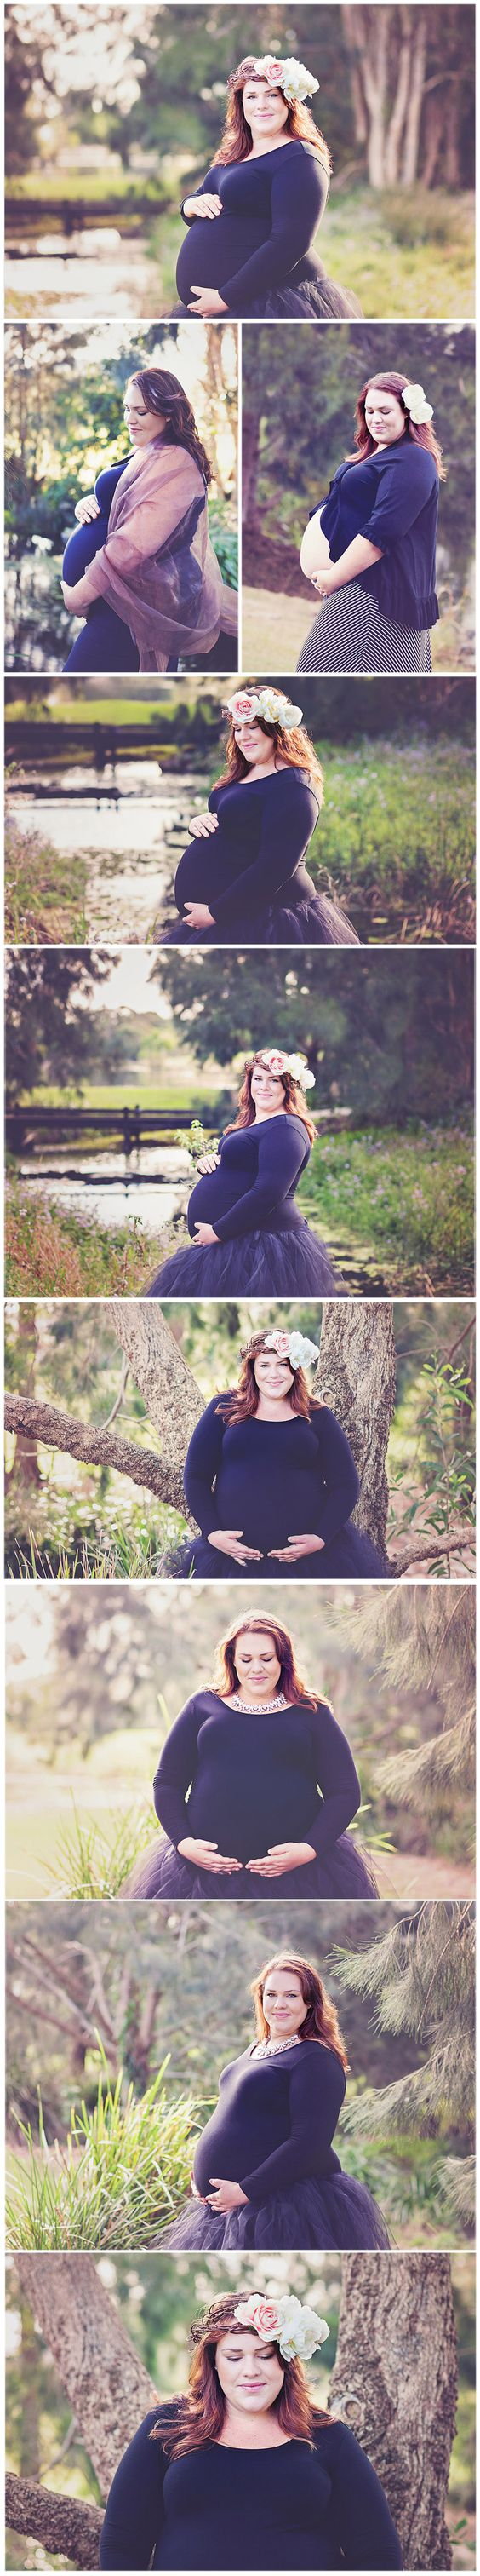 Stacey ~ Maternity Session ~ Michele Bird Photography